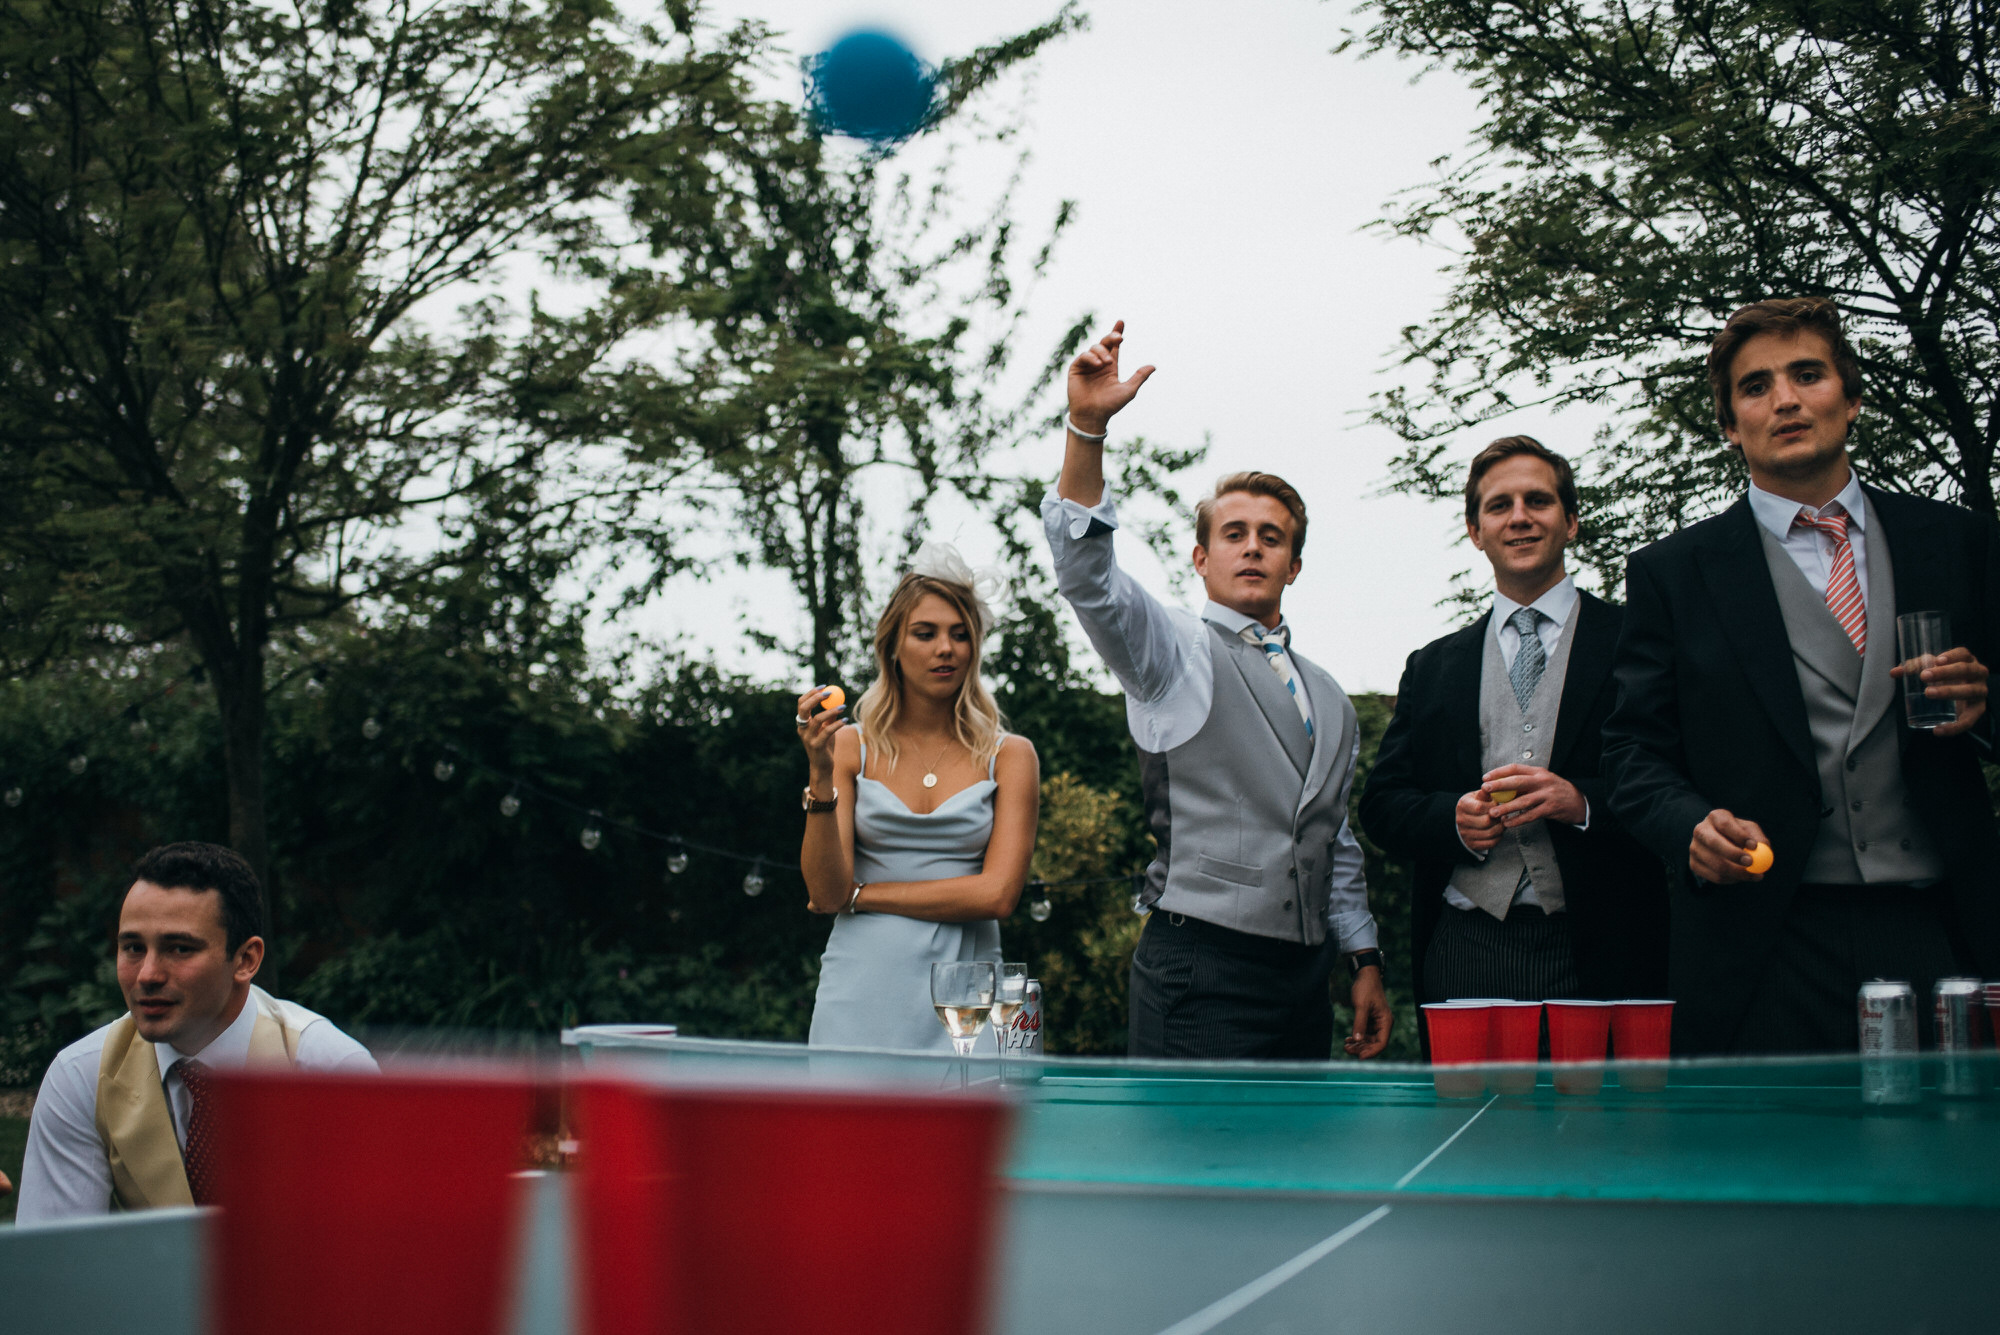 Beerpong at wedding